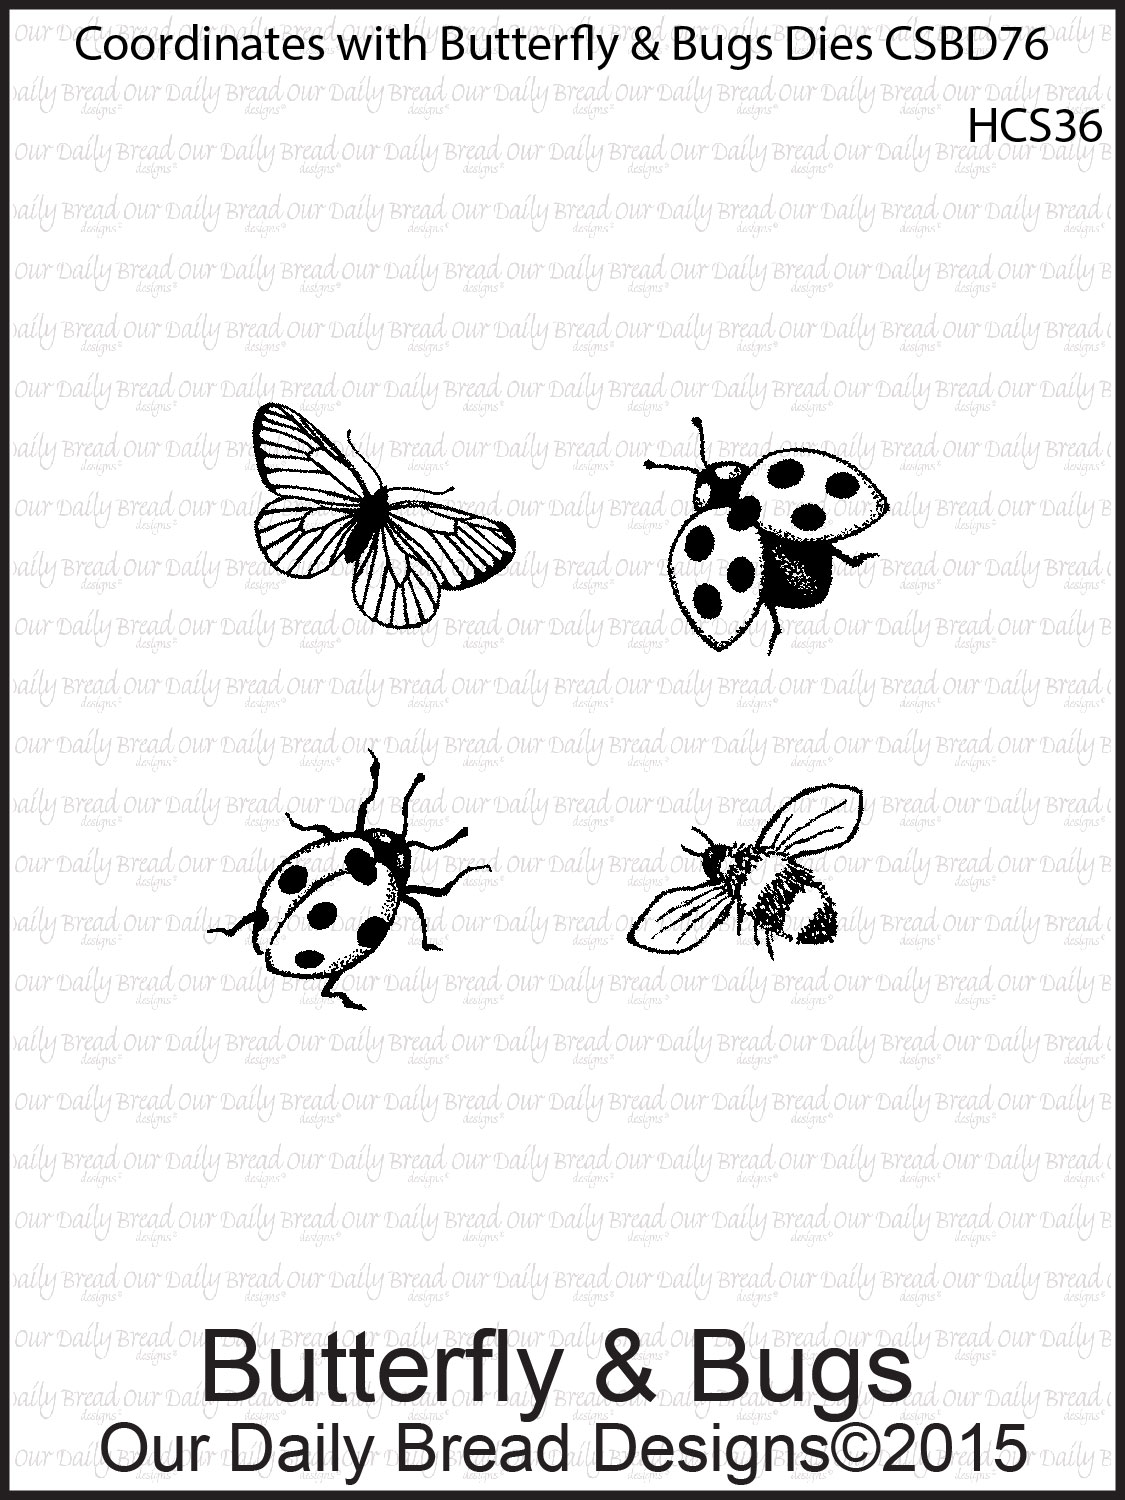 Stamps - Our Daily Bread Designs Custom Butterfly & Bugs